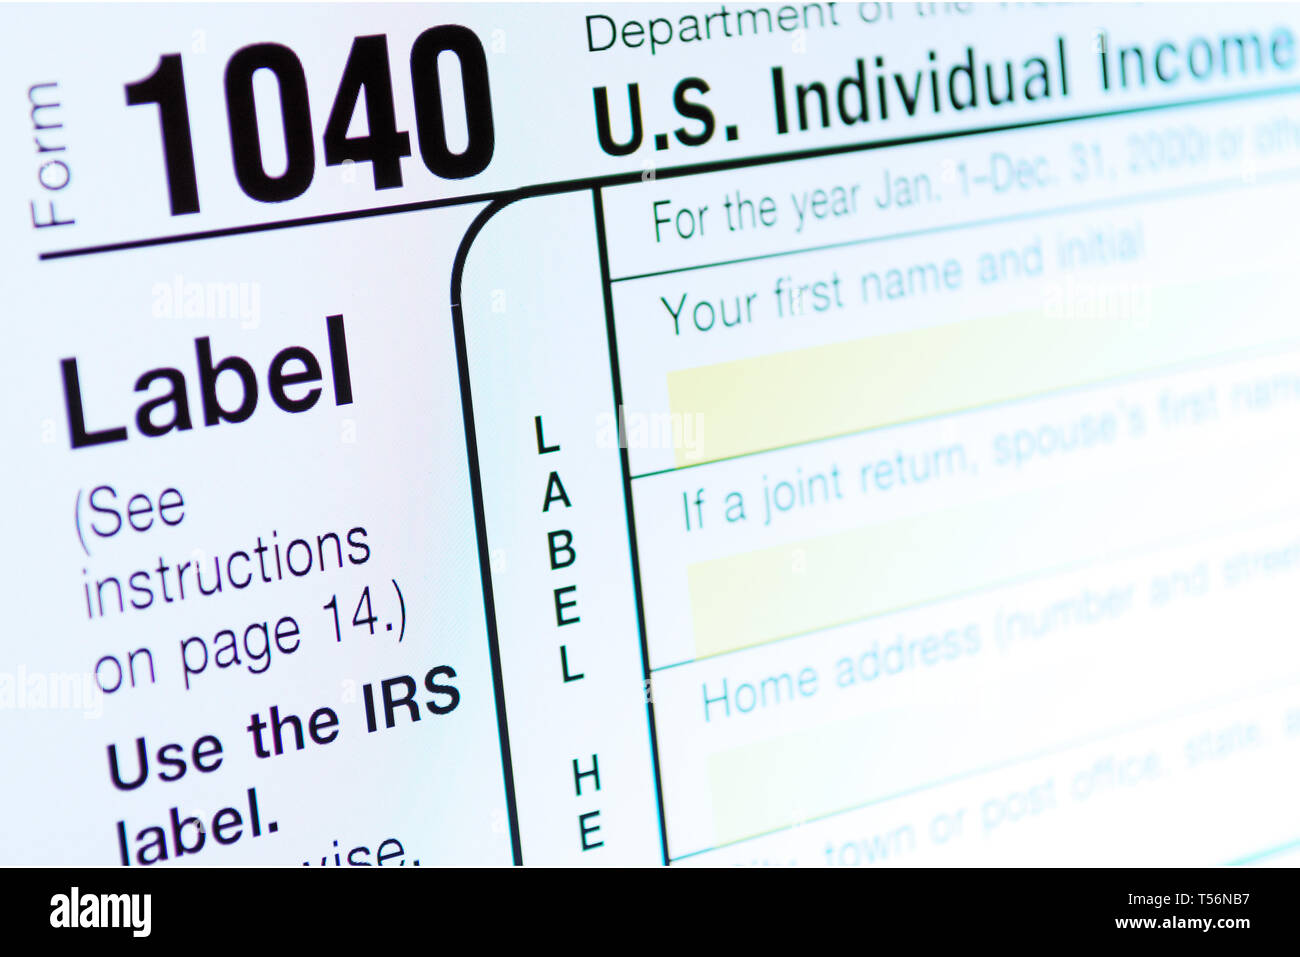 Income Tax Return Deduction Form 1040 on Computer Monitor. Refund Concept. Copy space for your text - Stock Image